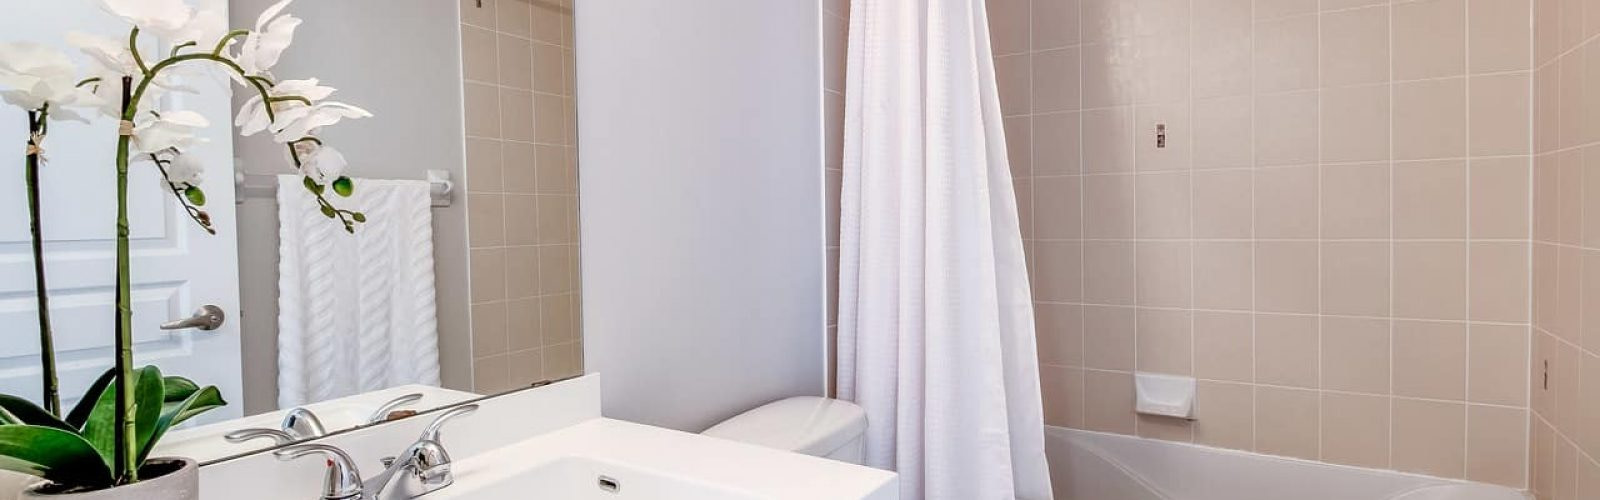 Bathroom Cleaning, our-cleaning-process, deep thorough cleaning, bathroom cleaning checklist